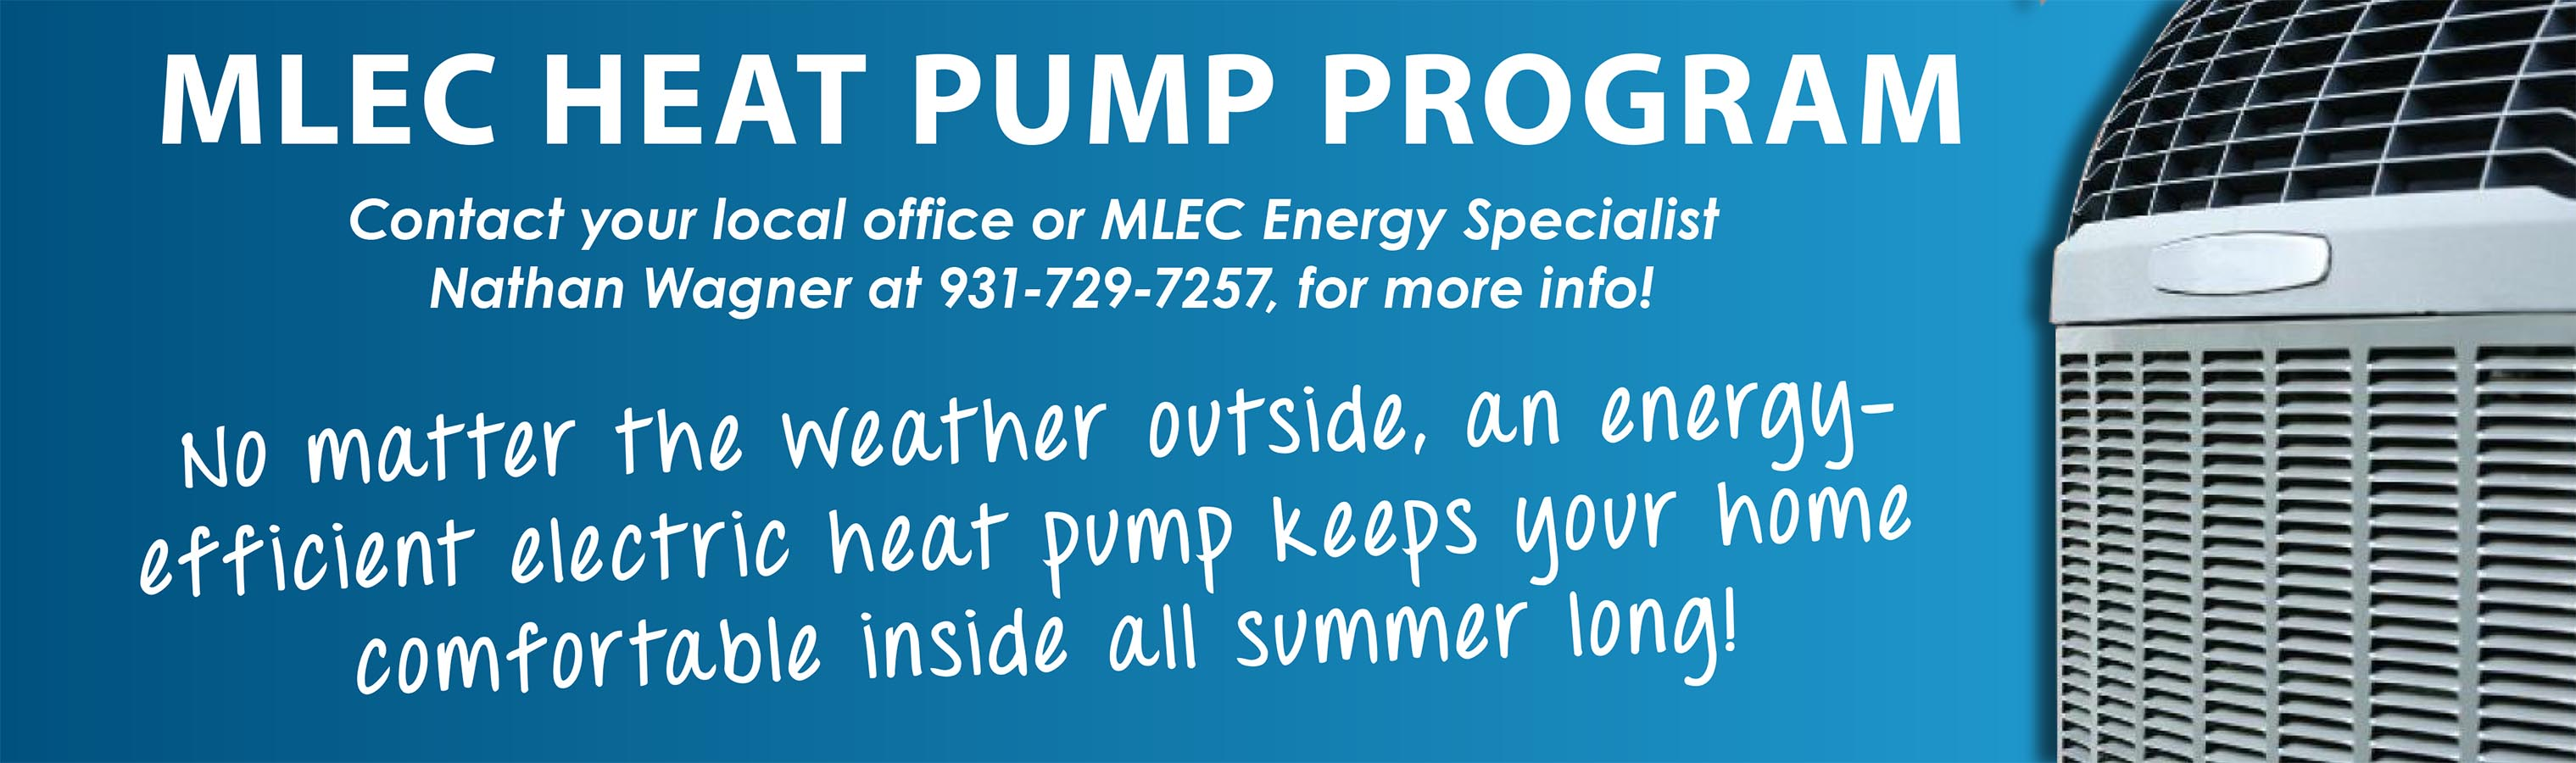 MLEC Heat Pump Program. Contact MLEC Energy Specialist Nathan Wagner for more info.